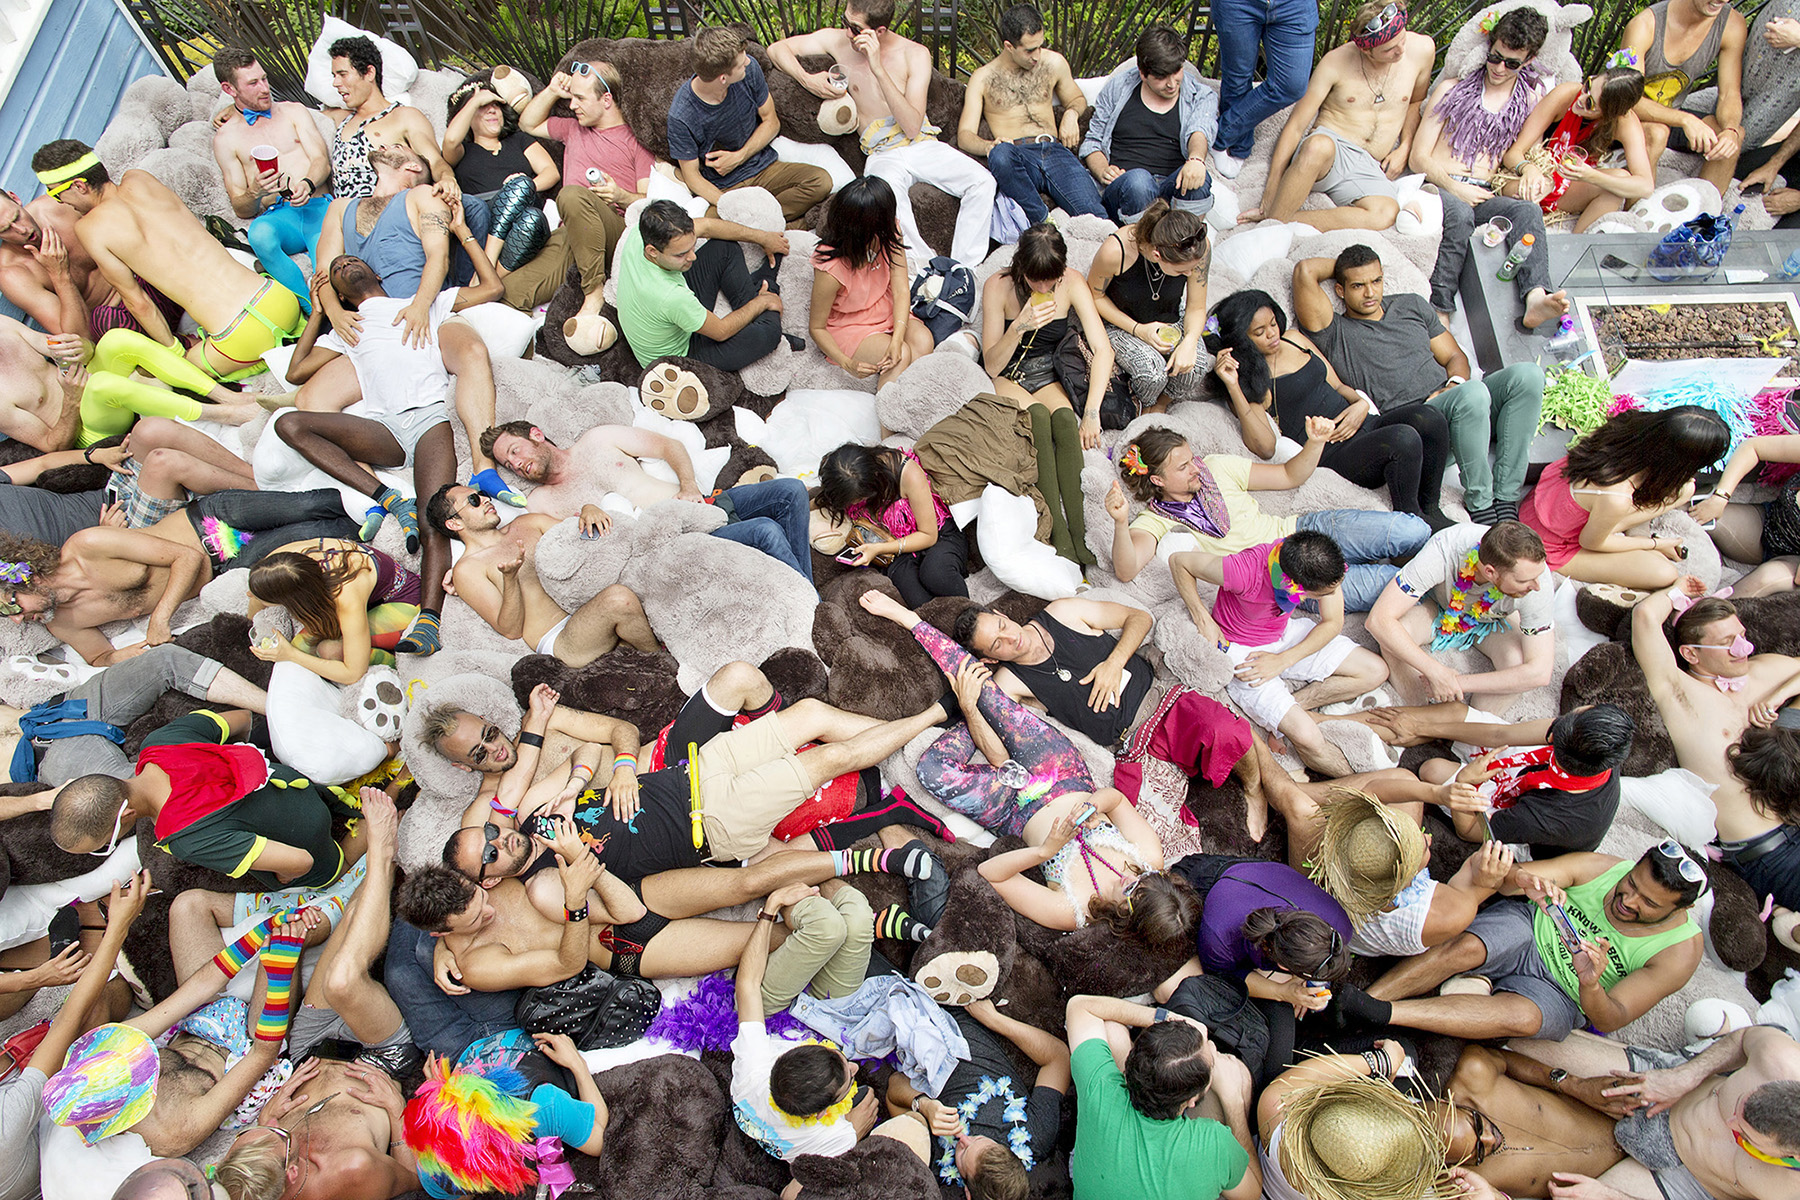 Guests of a fundraiser party for Disco Chateau, a Burning Man camp organized by technology entrepreneur Ari Kalfayan, cuddle with one another in a pile of giant stuffed animals on the deck of the home Kalfayan shares with roommates in San Francisco, California in June 2015. The camp was raising money to buy more stuffed animals to bring to the Burning Man festival for a {quote}cuddle puddle{quote} where people could cuddle with one another among the stuffed animals. The party, held during the annual San Francisco Pride weekend, also served as a pride celebration, which was made especially festive due to the Supreme Court's ruling the day before granting same-sex couples the right to marriage in the United States.